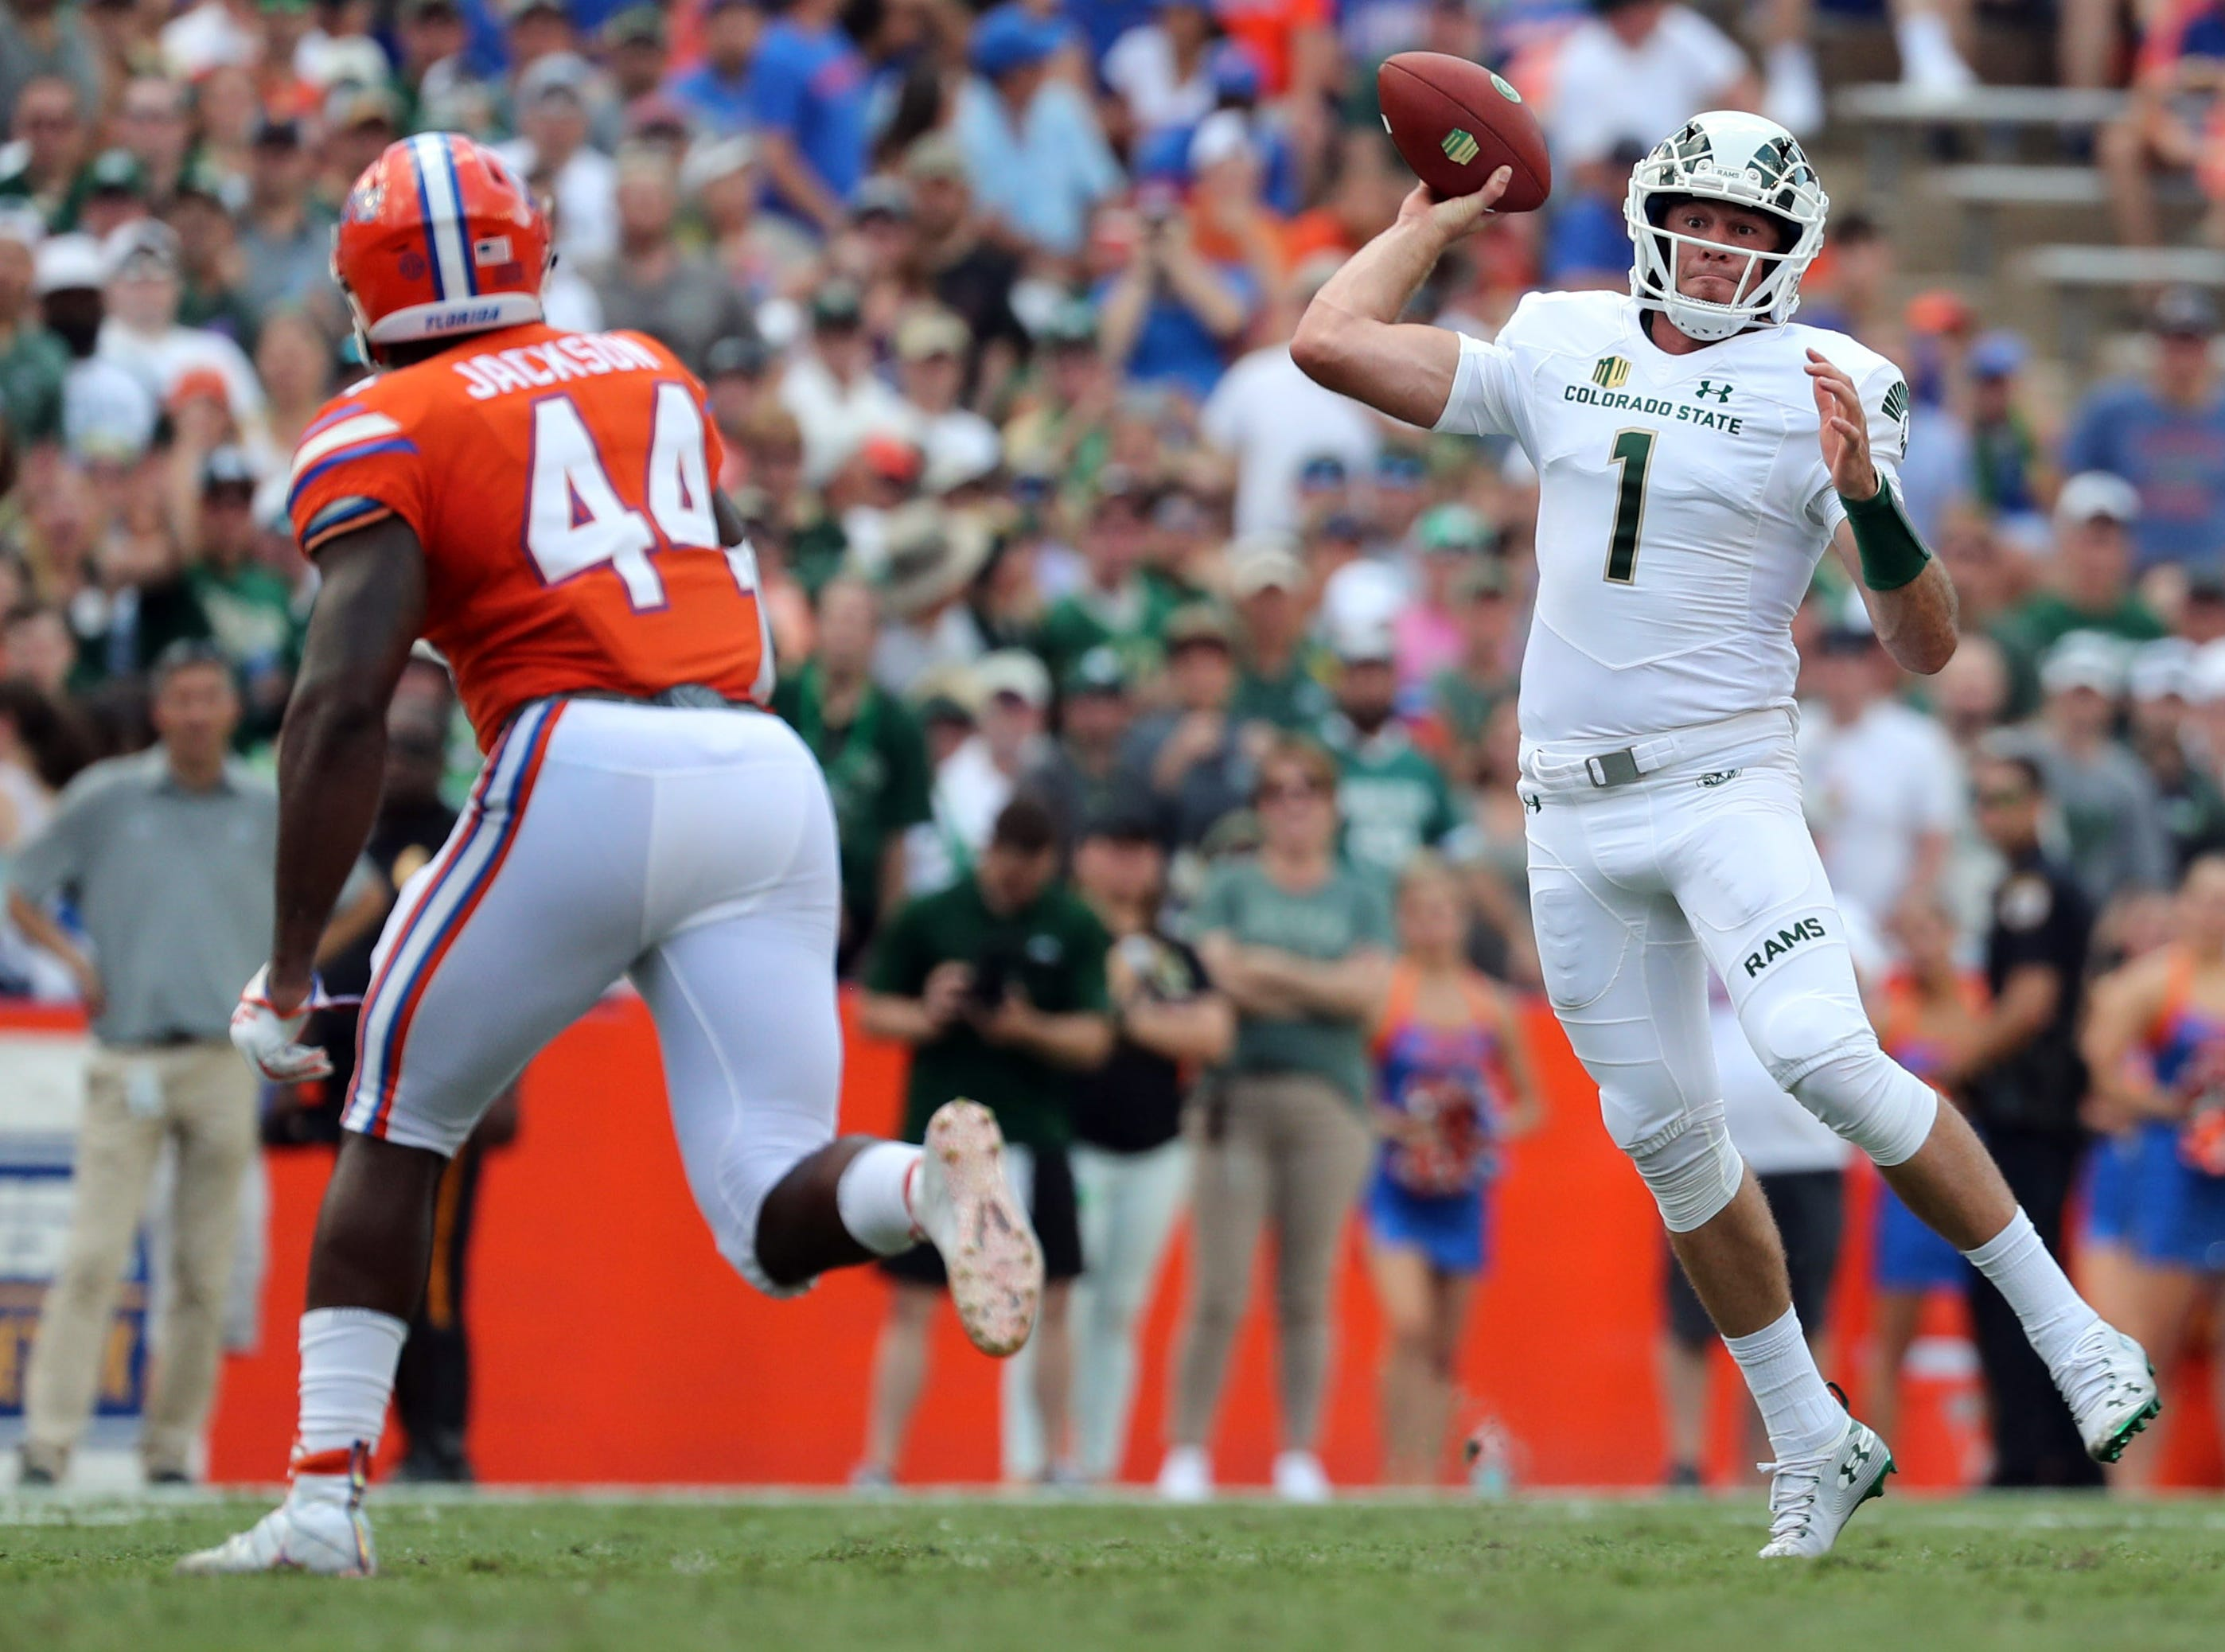 Sep 15, 2018; Gainesville, FL, USA; Colorado State Rams quarterback K.J. Carta-Samuels (1) throws the ball as Florida Gators linebacker Rayshad Jackson (44) defends during the first quarter at Ben Hill Griffin Stadium. Mandatory Credit: Kim Klement-USA TODAY Sports